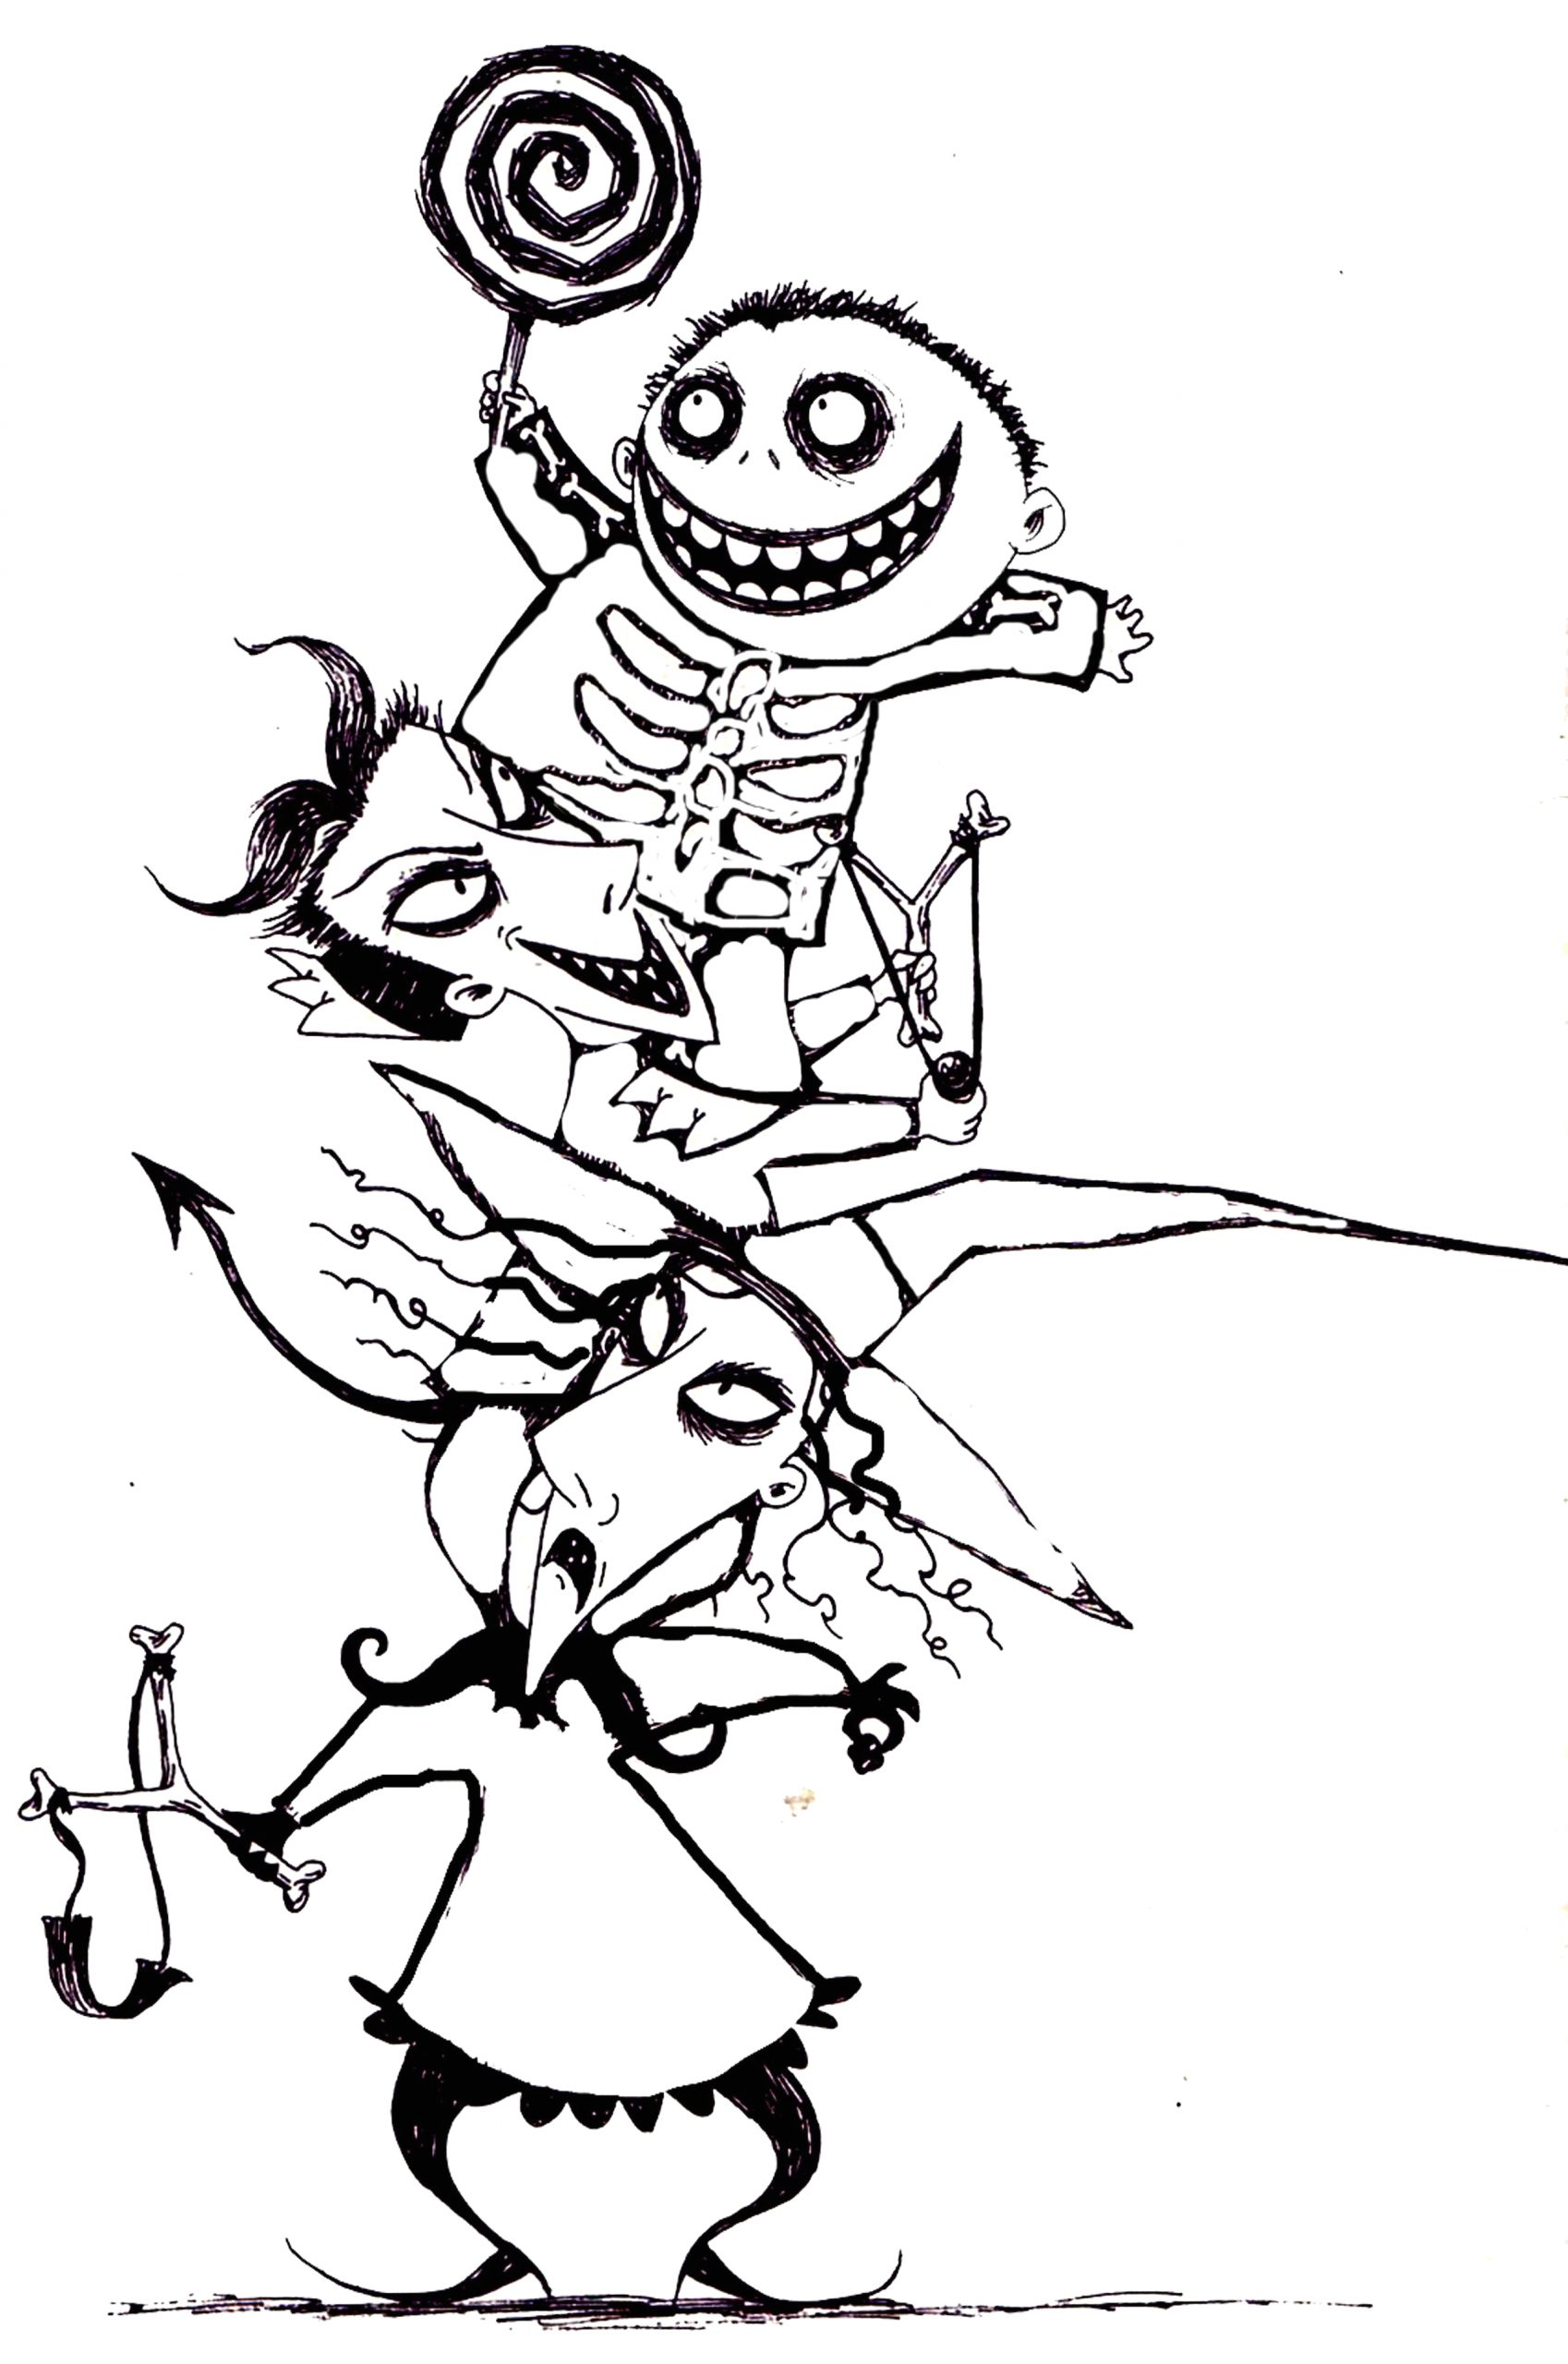 Nightmare before Christmas Coloring Pages for Kids Free Printable Nightmare before Christmas Coloring Pages